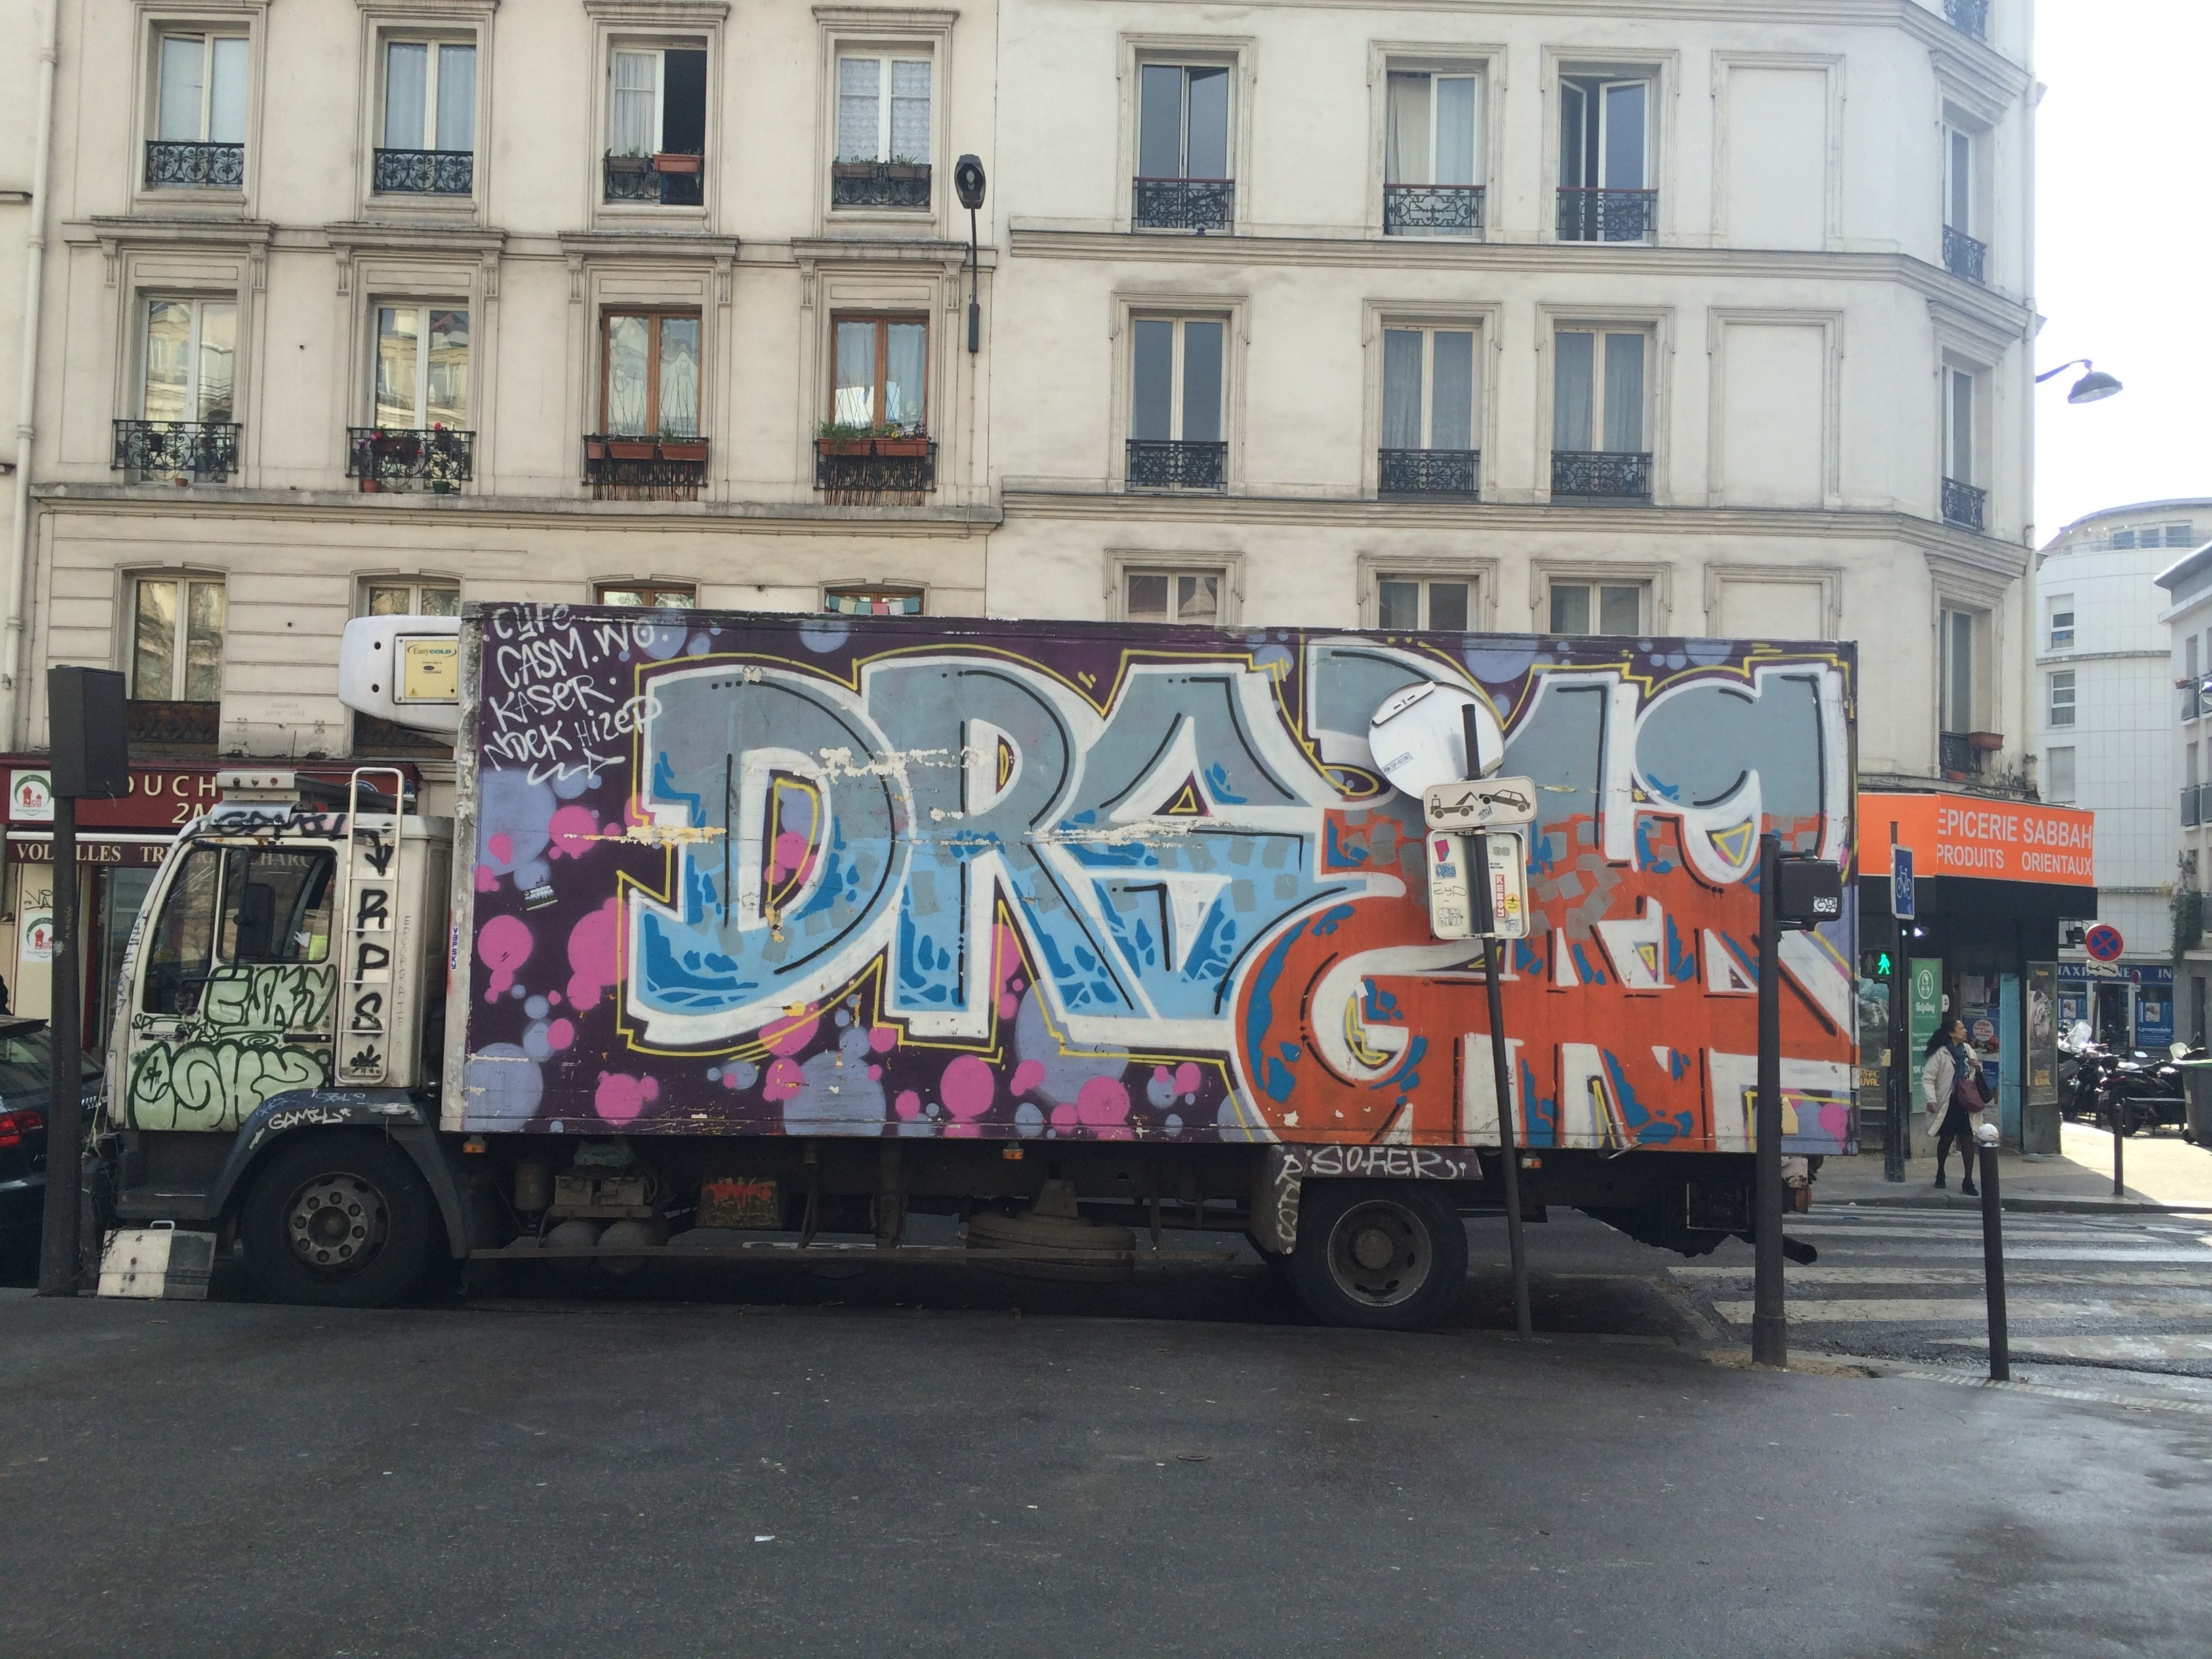 Truck Graffiti in Belleville, Paris